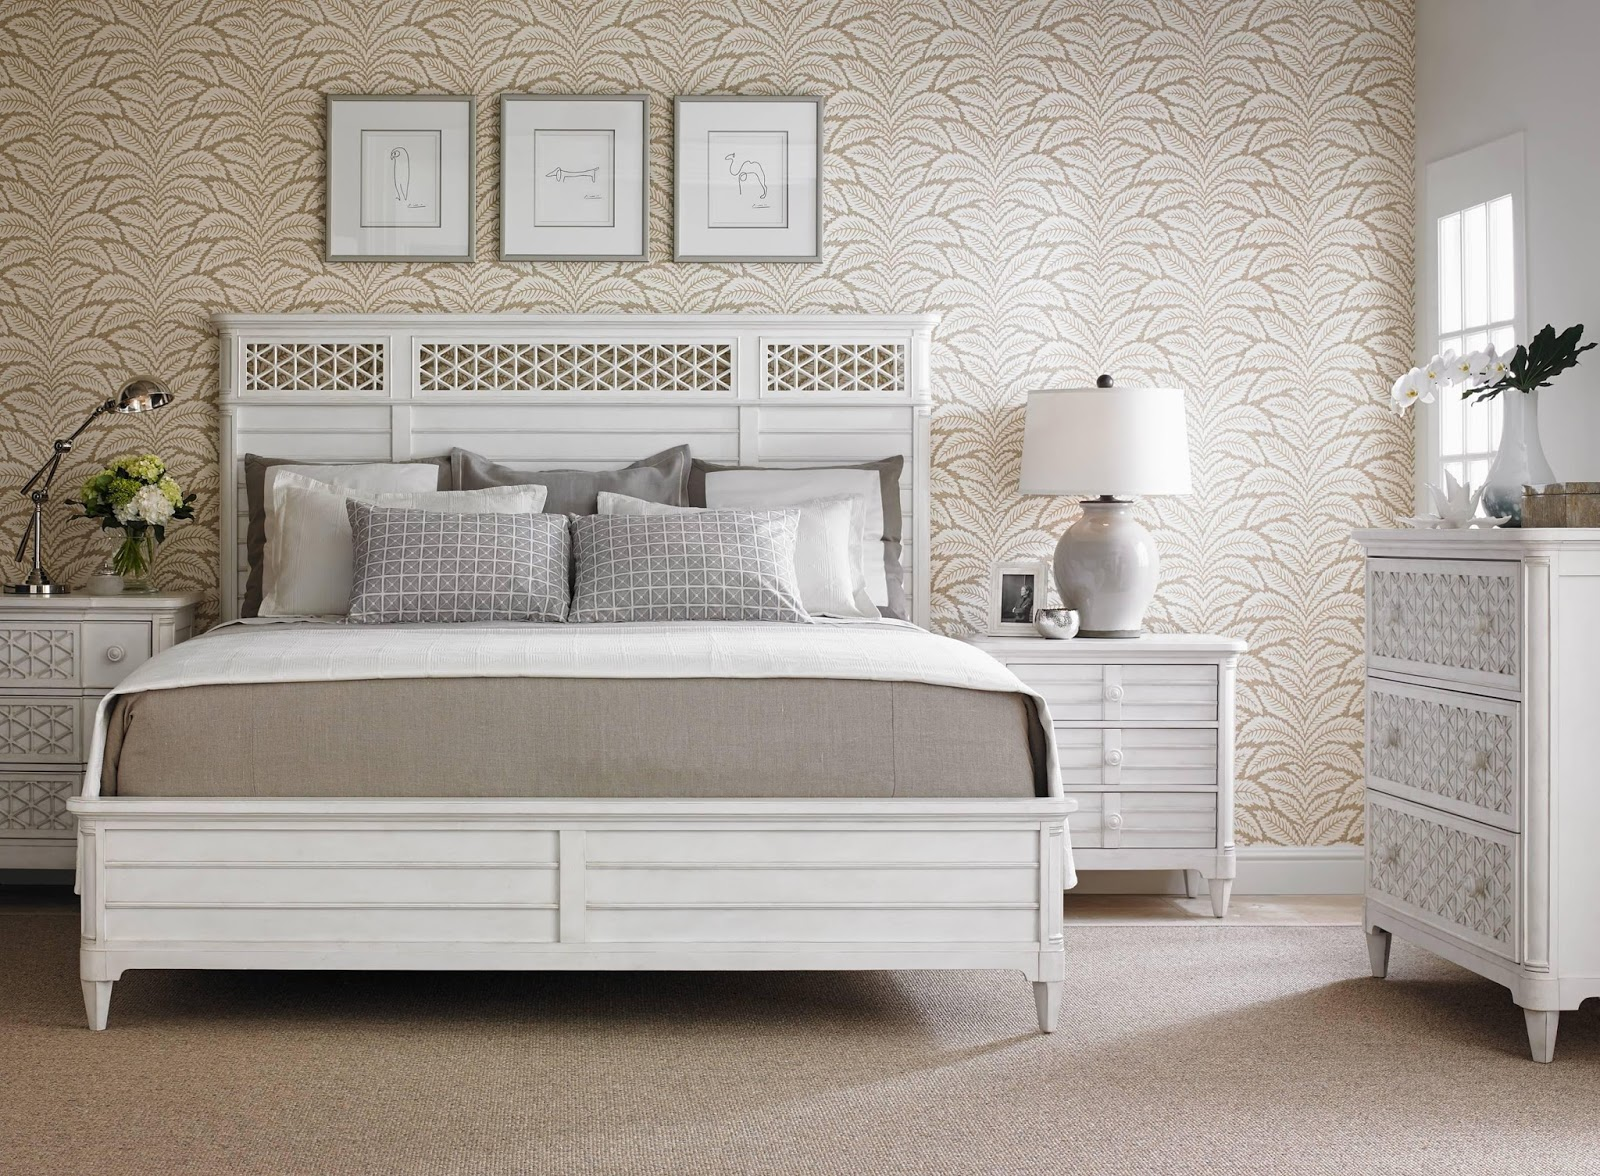 Baer 39 S Furniture Store What 39 S Your Style Cottage Chic From Stanley Furniture